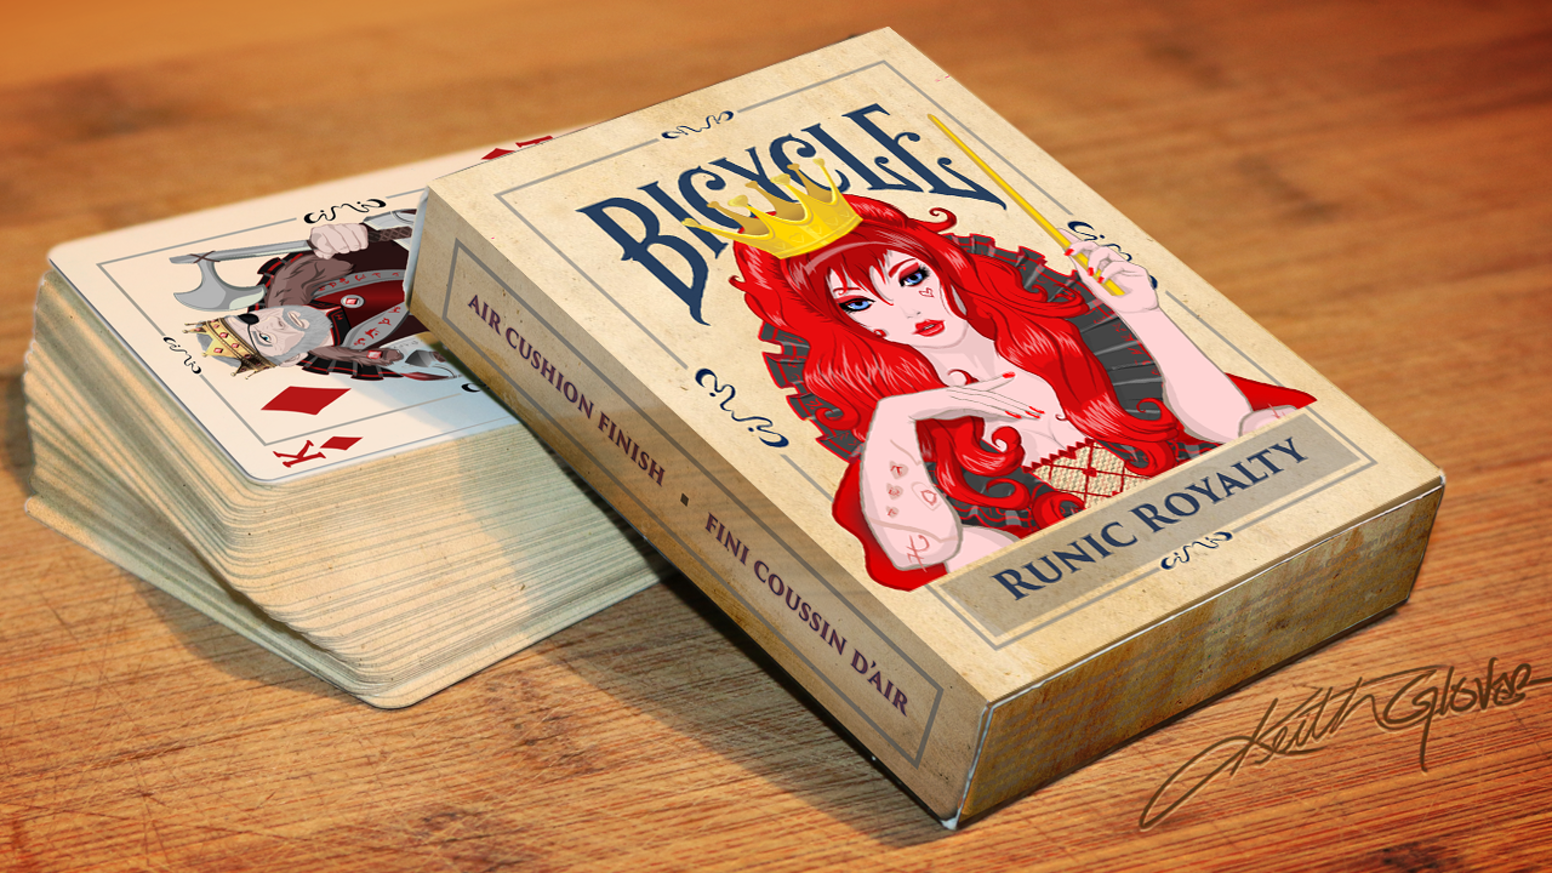 Custom designed Playing Cards created for magic lovers printed by the USPCC under the Bicycle Label. LIMITED RUN of 1,000 decks. Missed out? These Cards are now for sale for a limited time at http://keithglover.com/store